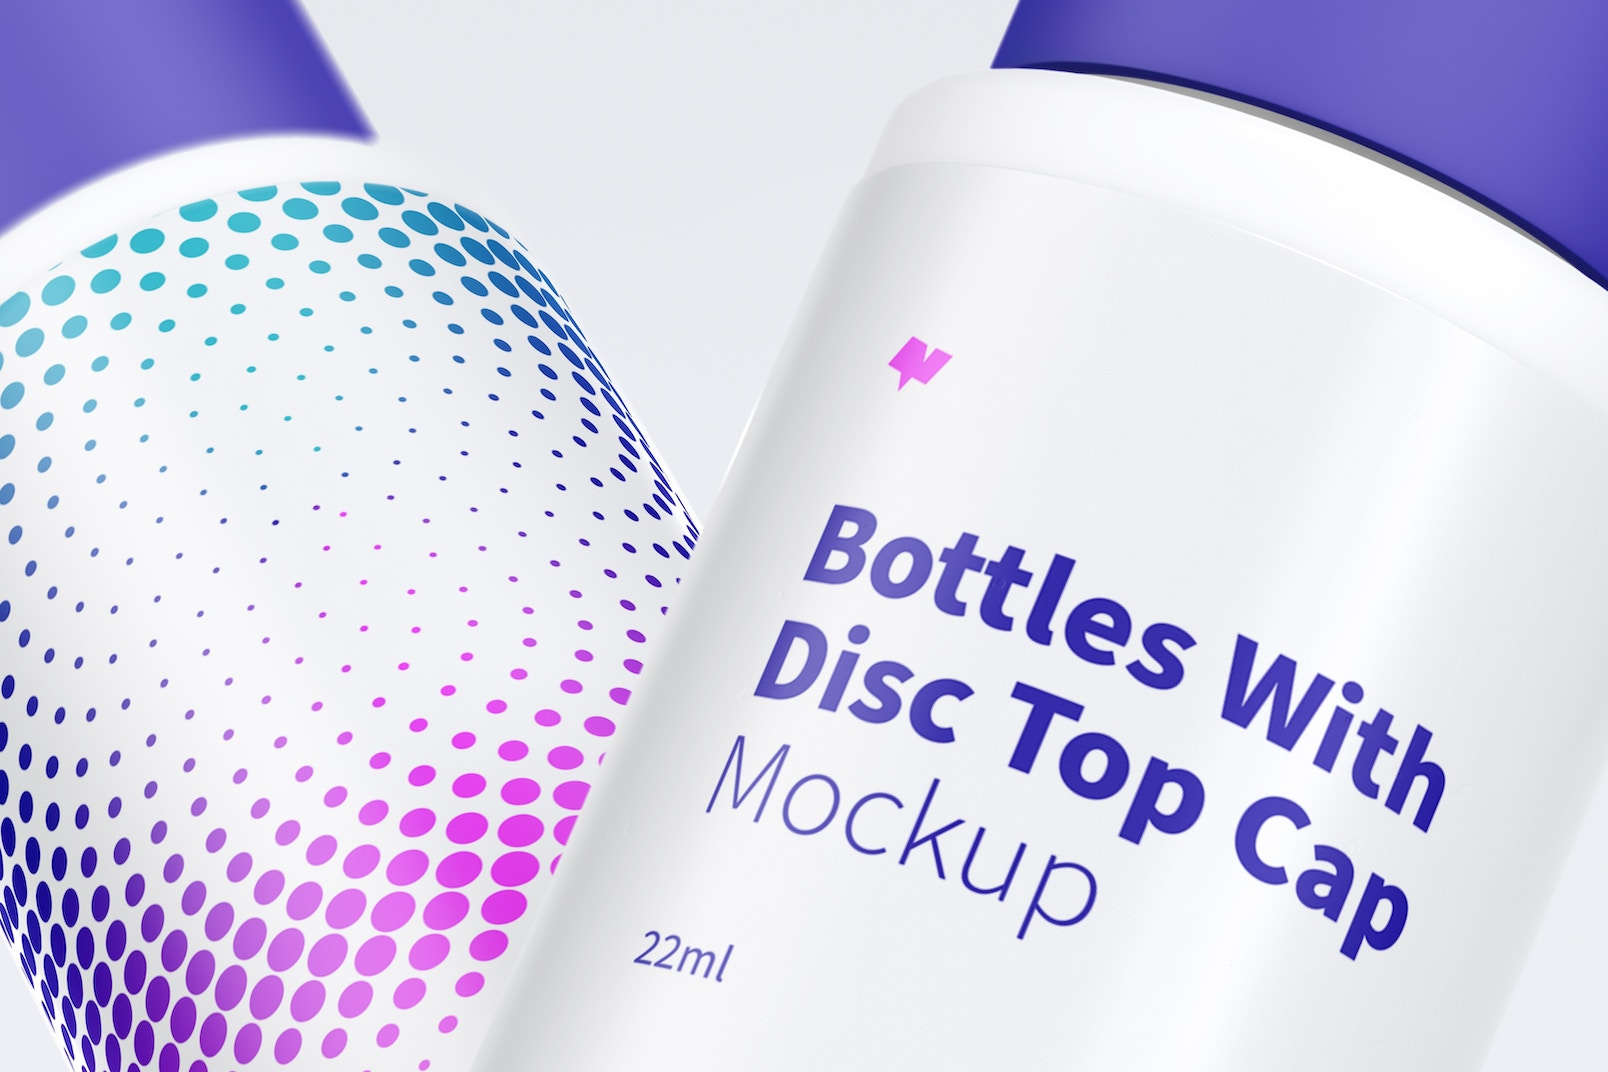 22ml Plastic Bottle With Disc Top Cap Mockup, Close Up